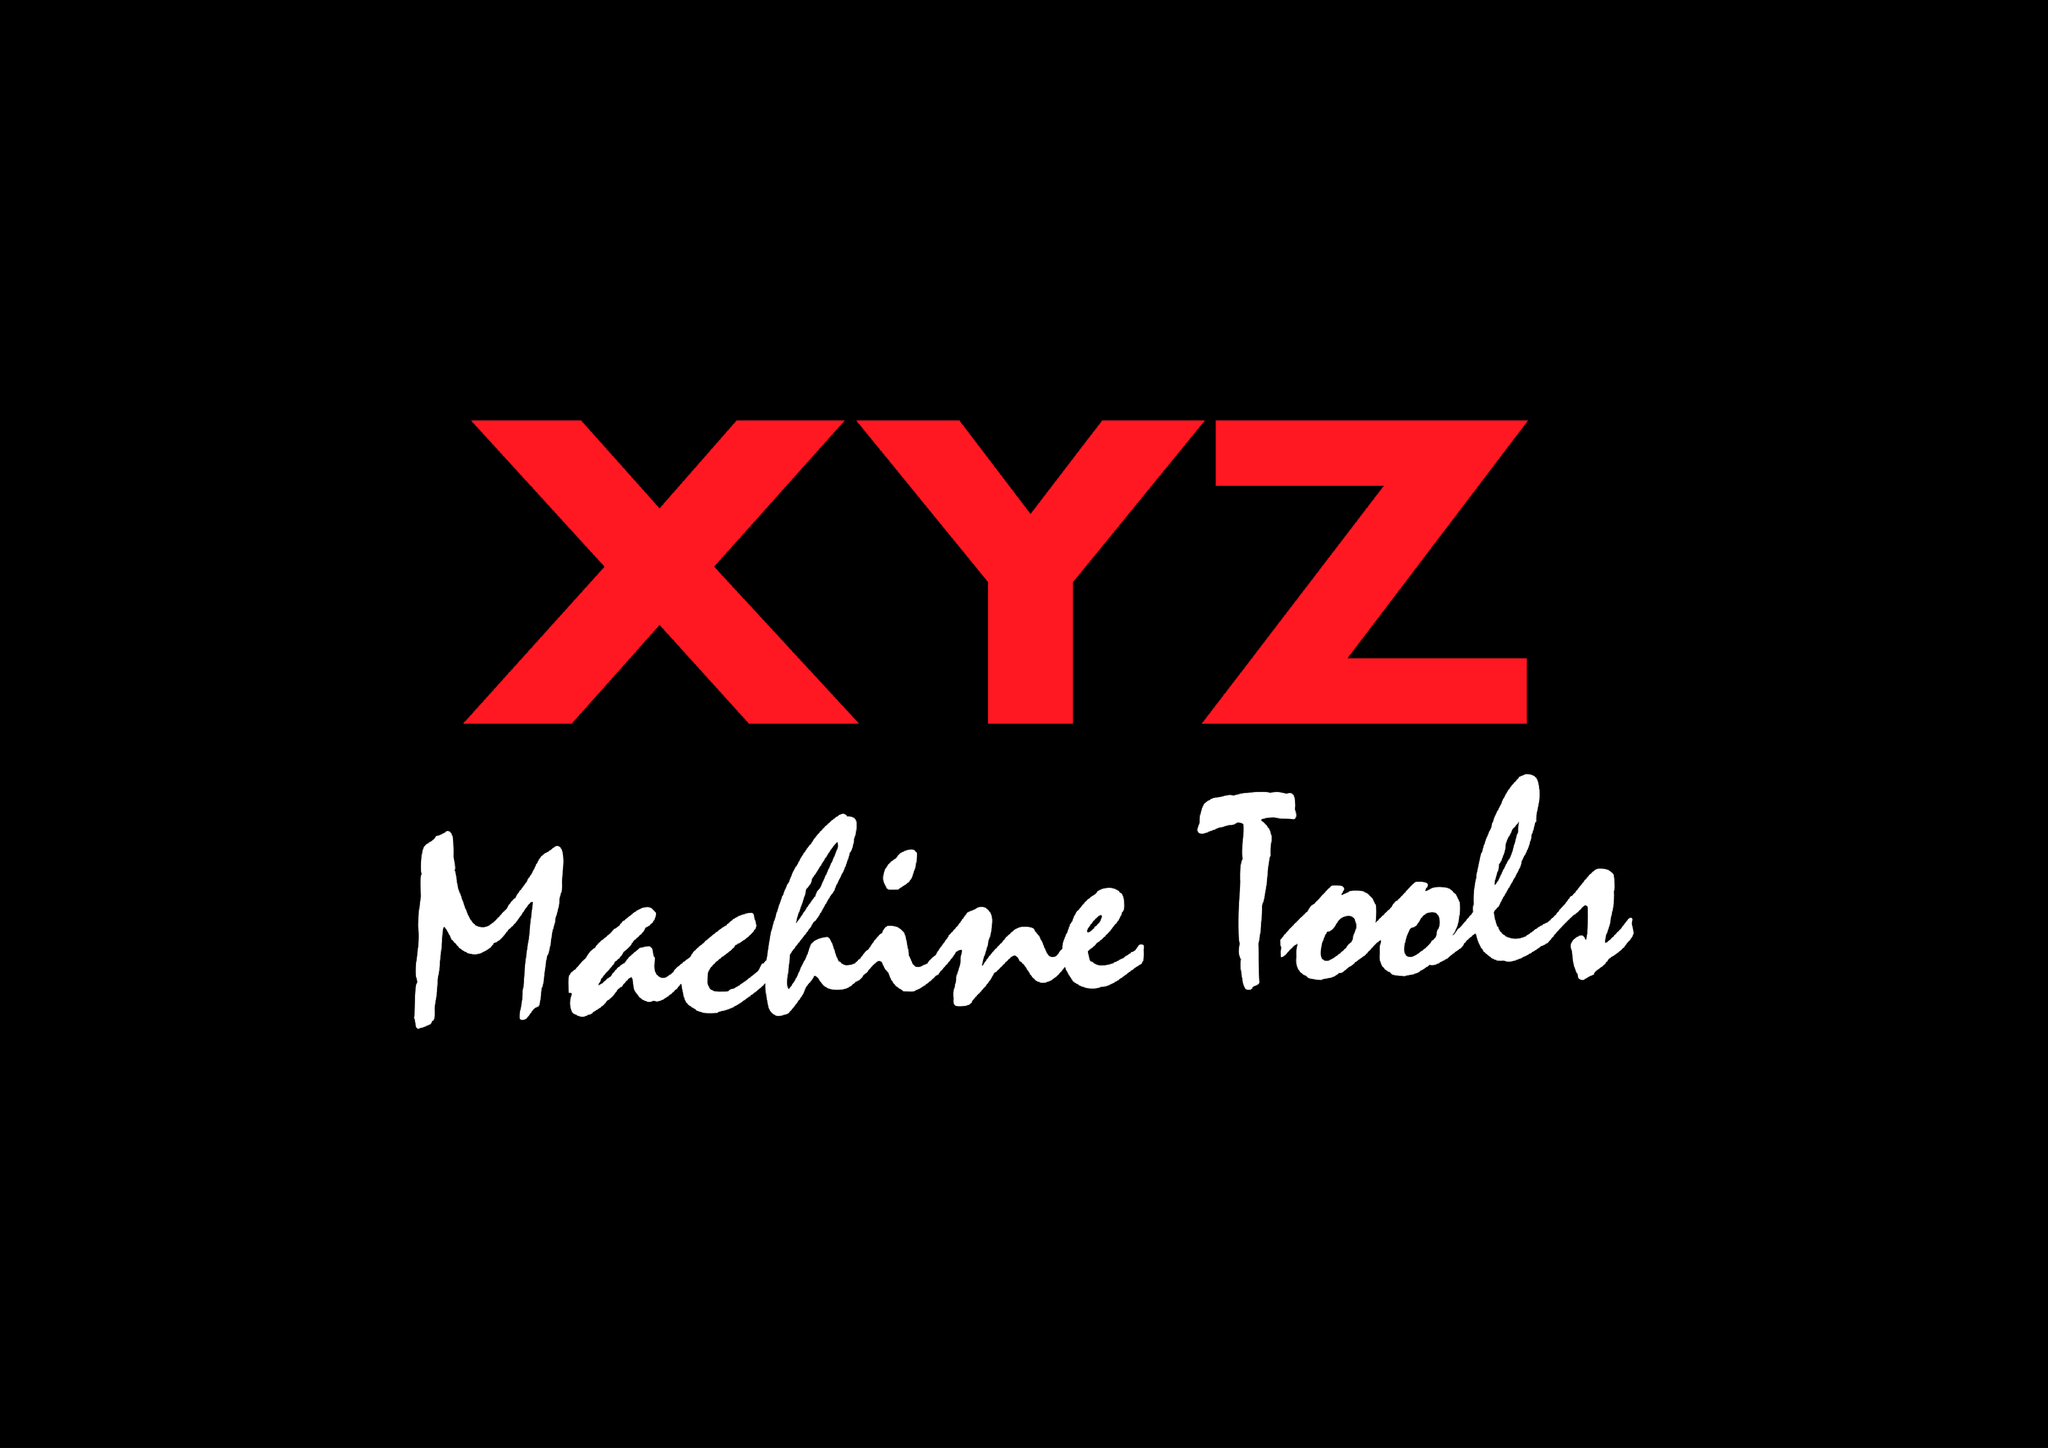 XYZ Machine Tools